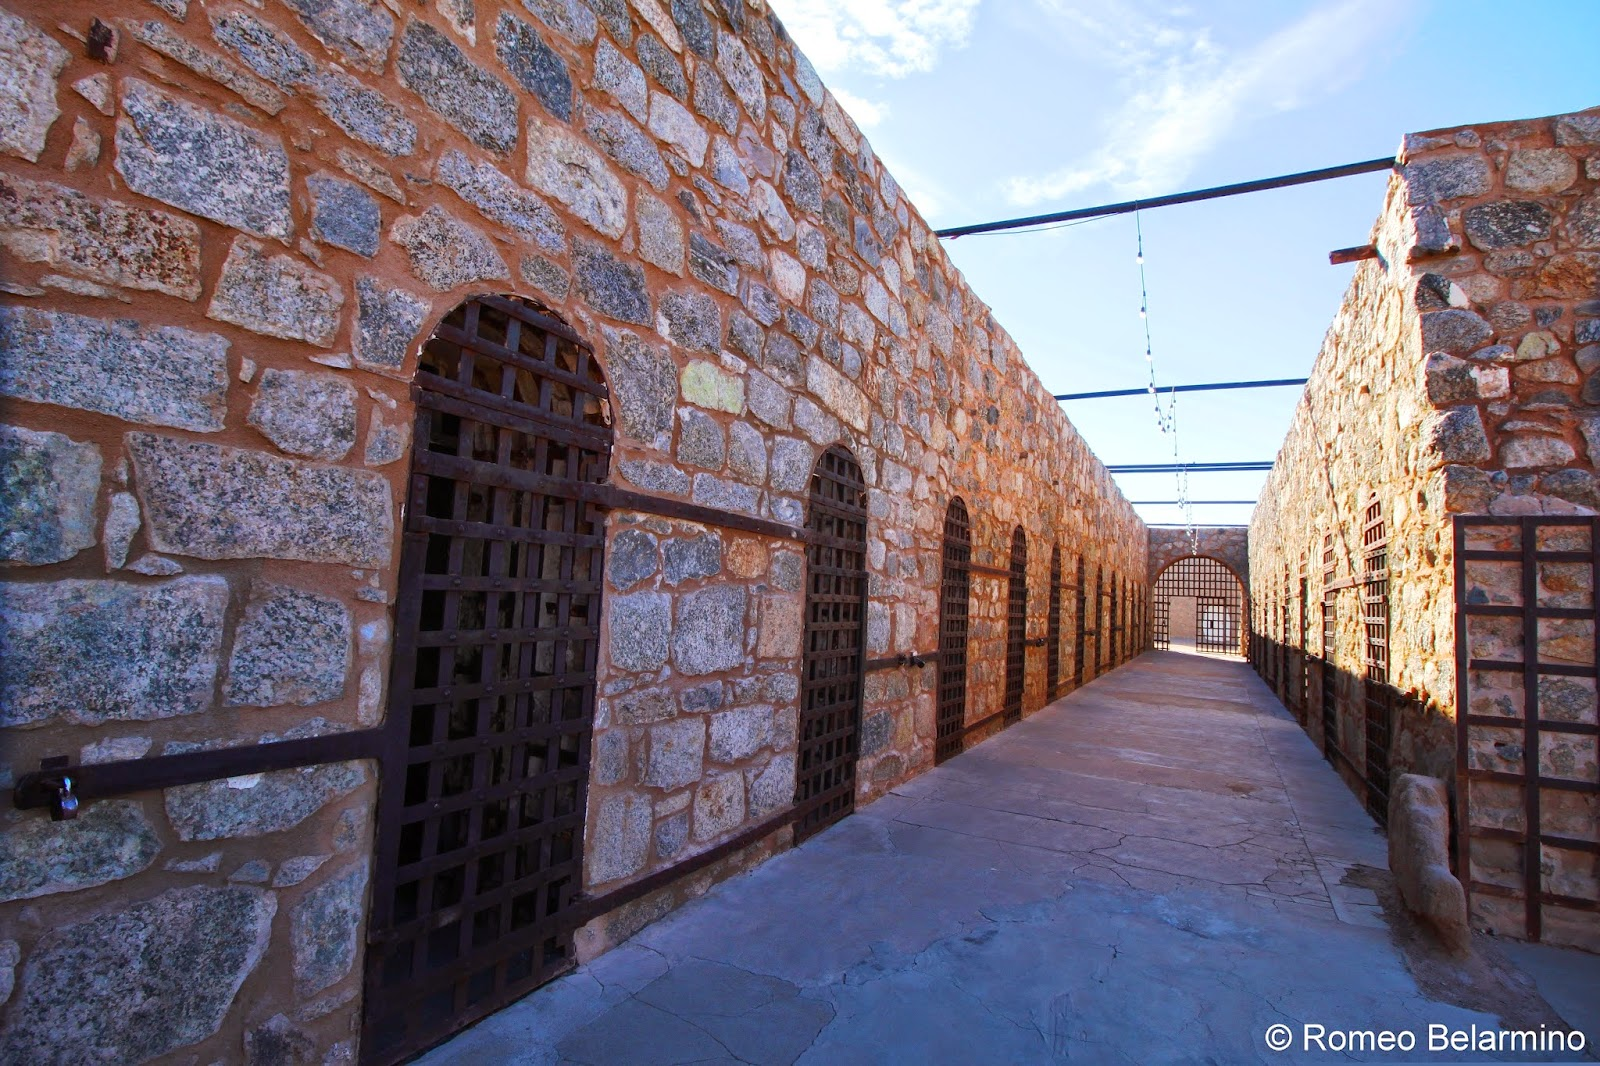 yuma territorial prison Yuma visitation for the cheyenne unit is closed until further notice and any items you bring onto prison property are subject to in state (private) facilities.